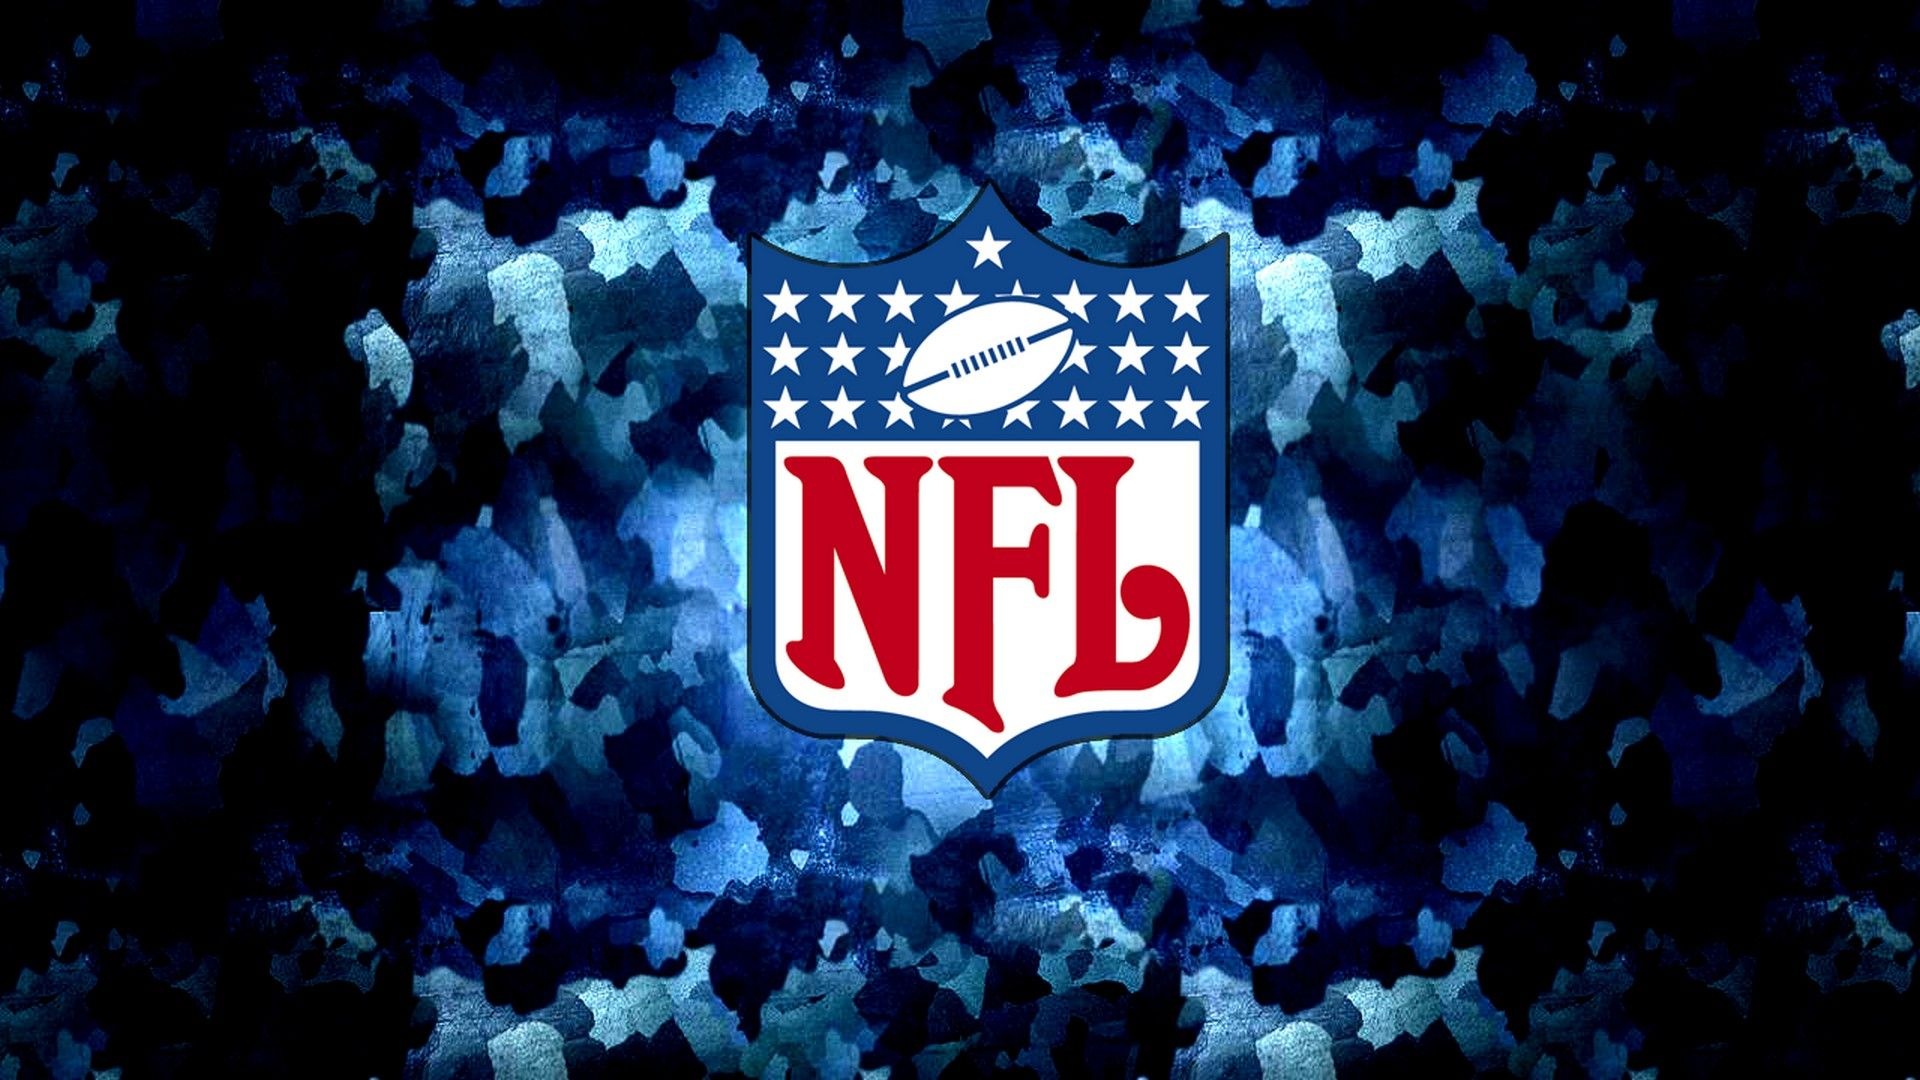 Cool Nfl Desktop Wallpaper 2020 Nfl Football Wallpapers Nfl Football Wallpaper Nfl Nfl Playoffs